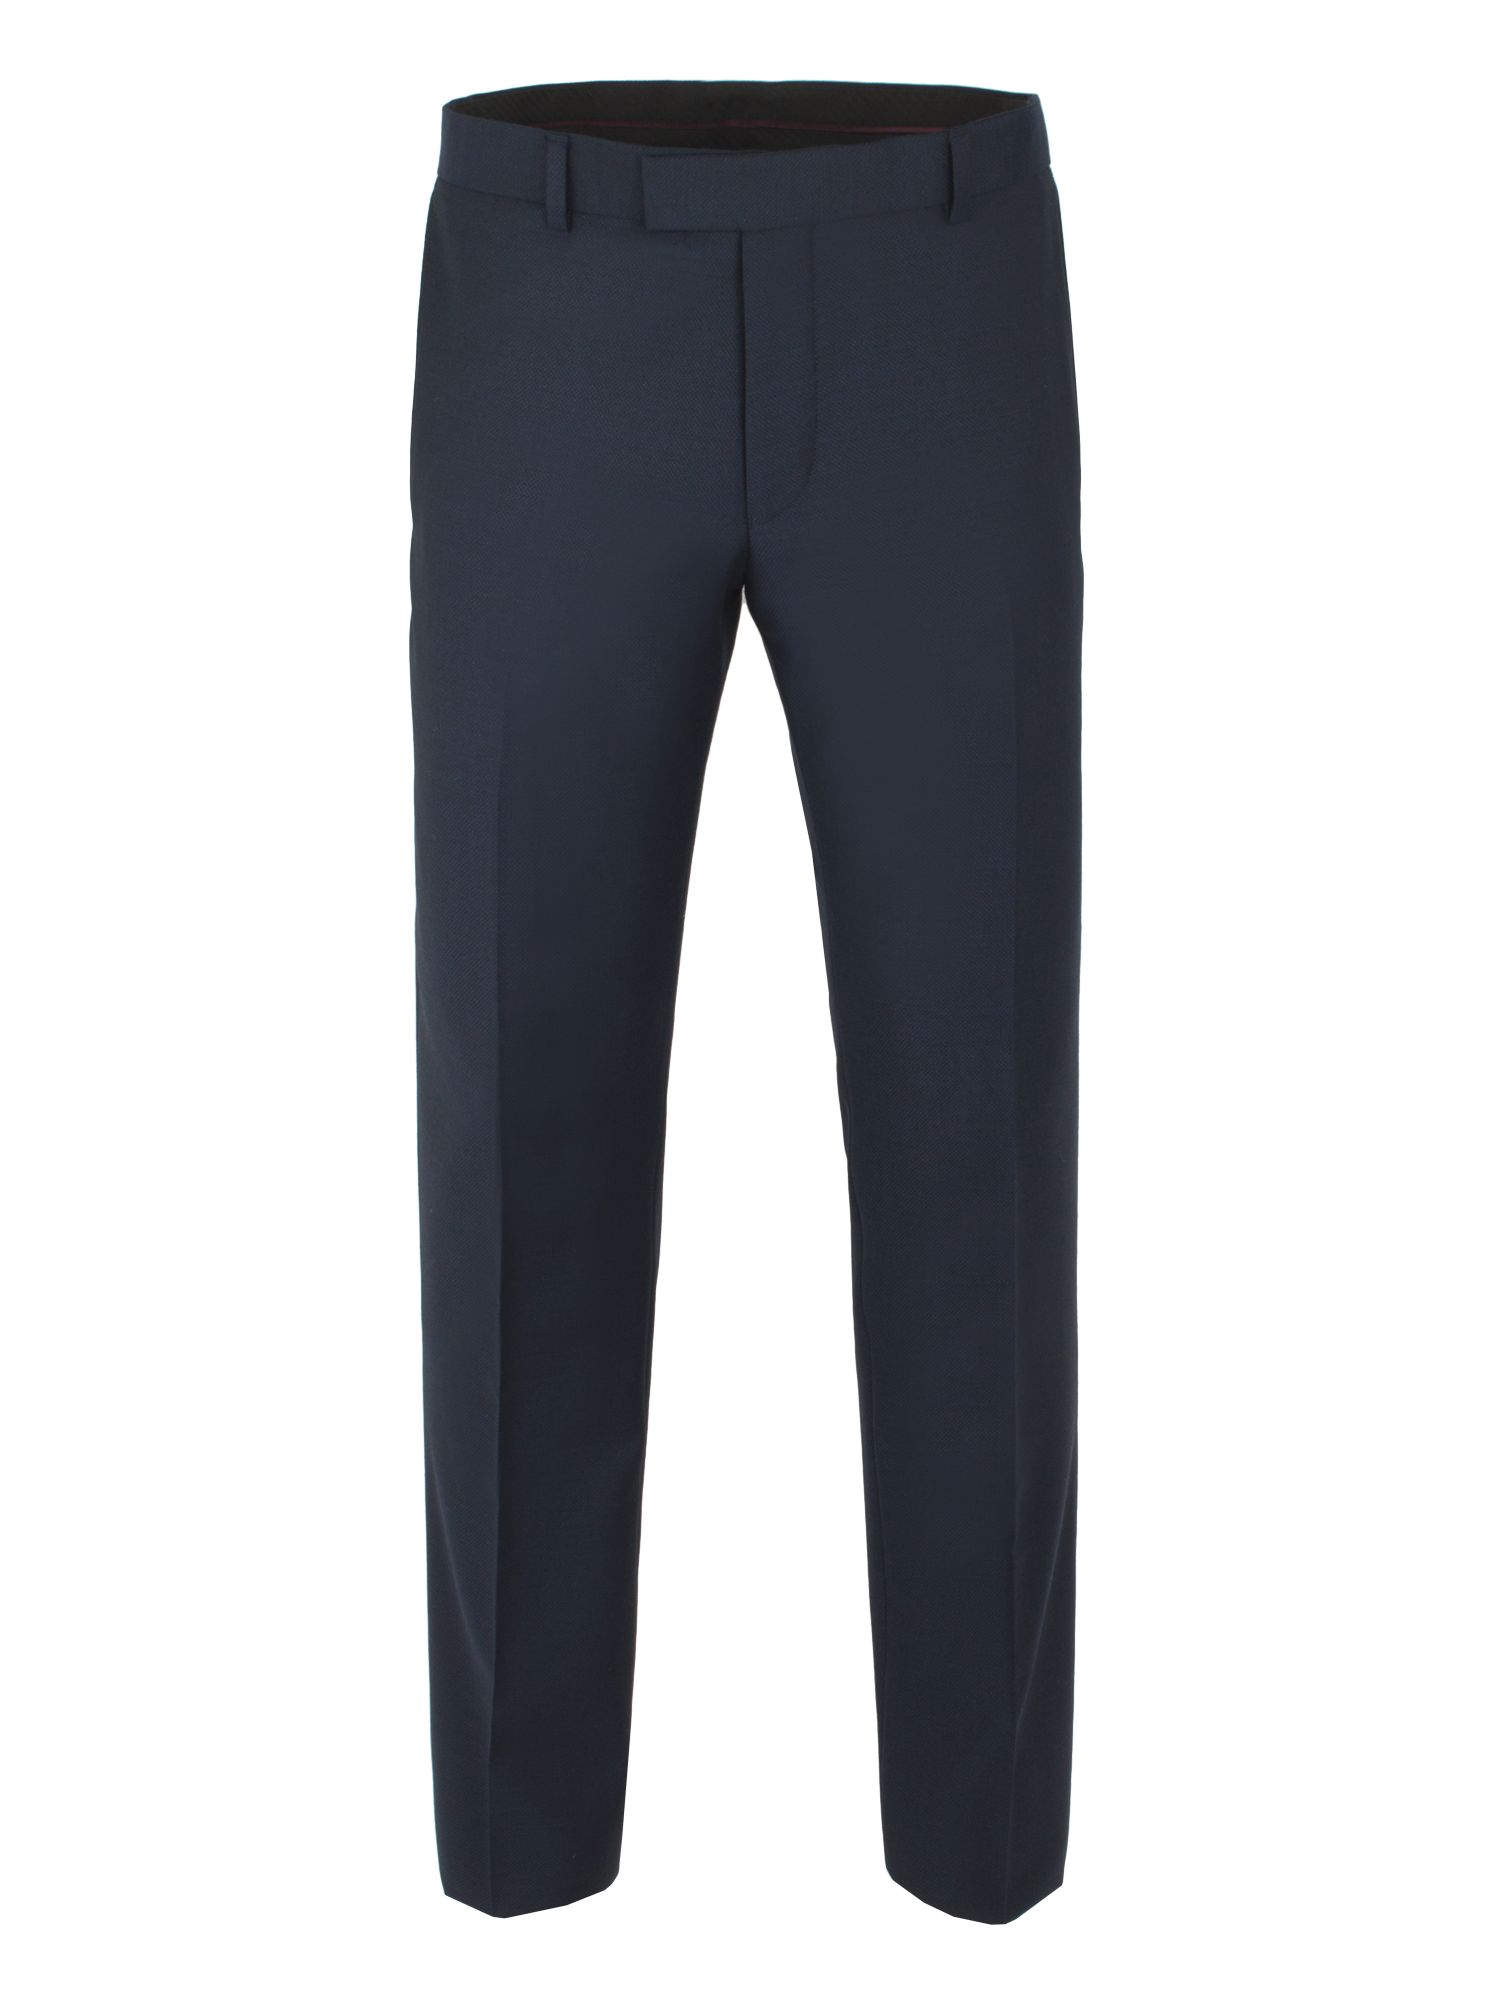 Alexandre of England Men's Alexandre of England Euston Pindot Suit Trousers, Navy